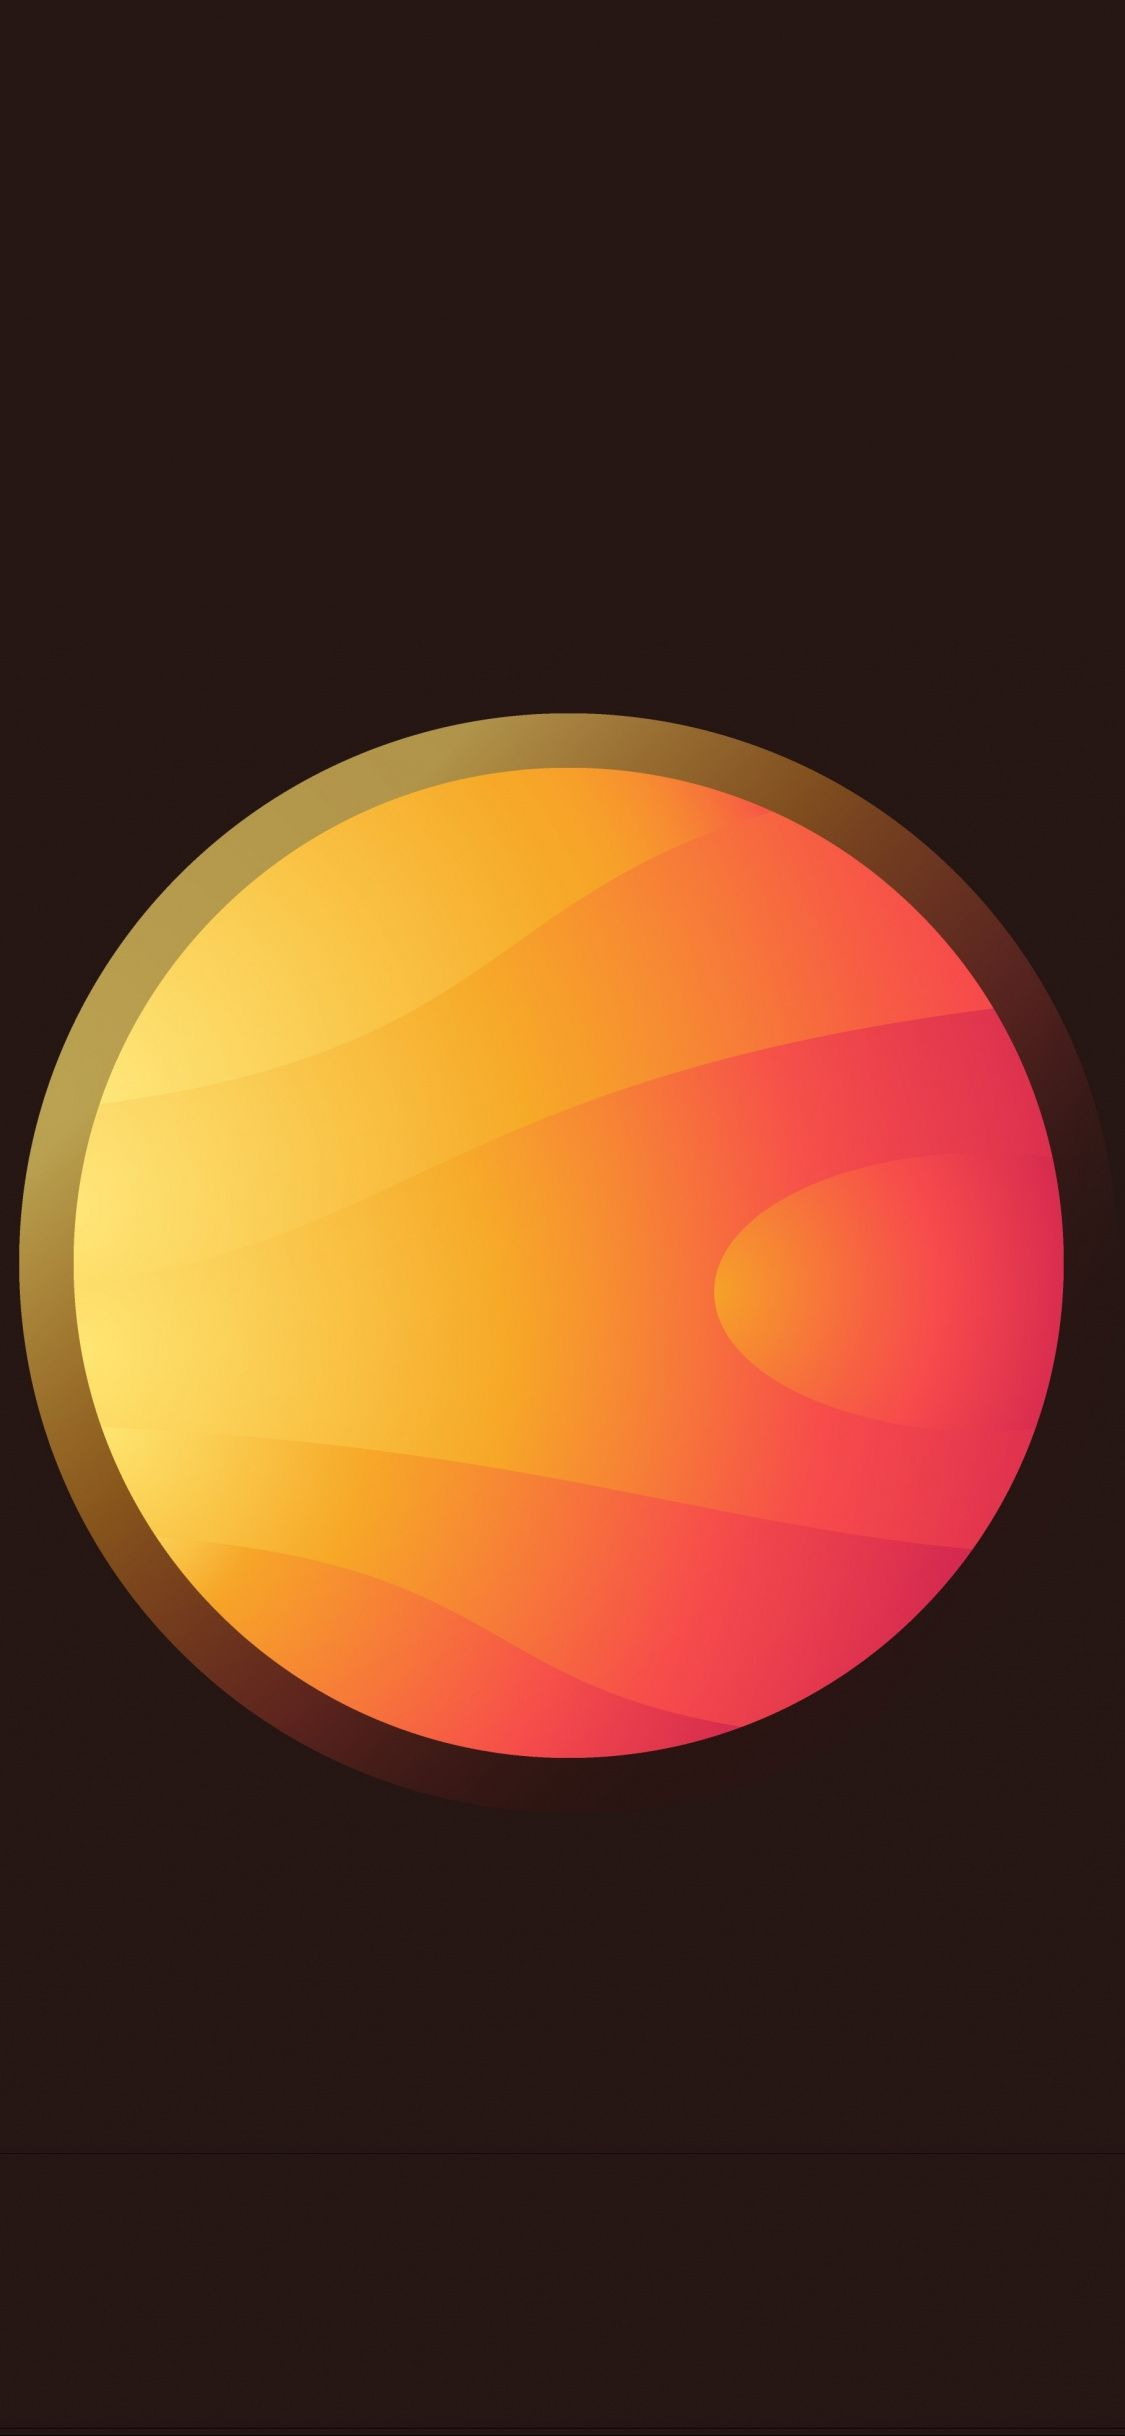 sun, glowing star, planet, minimalist, 1125x2436 wallpaper